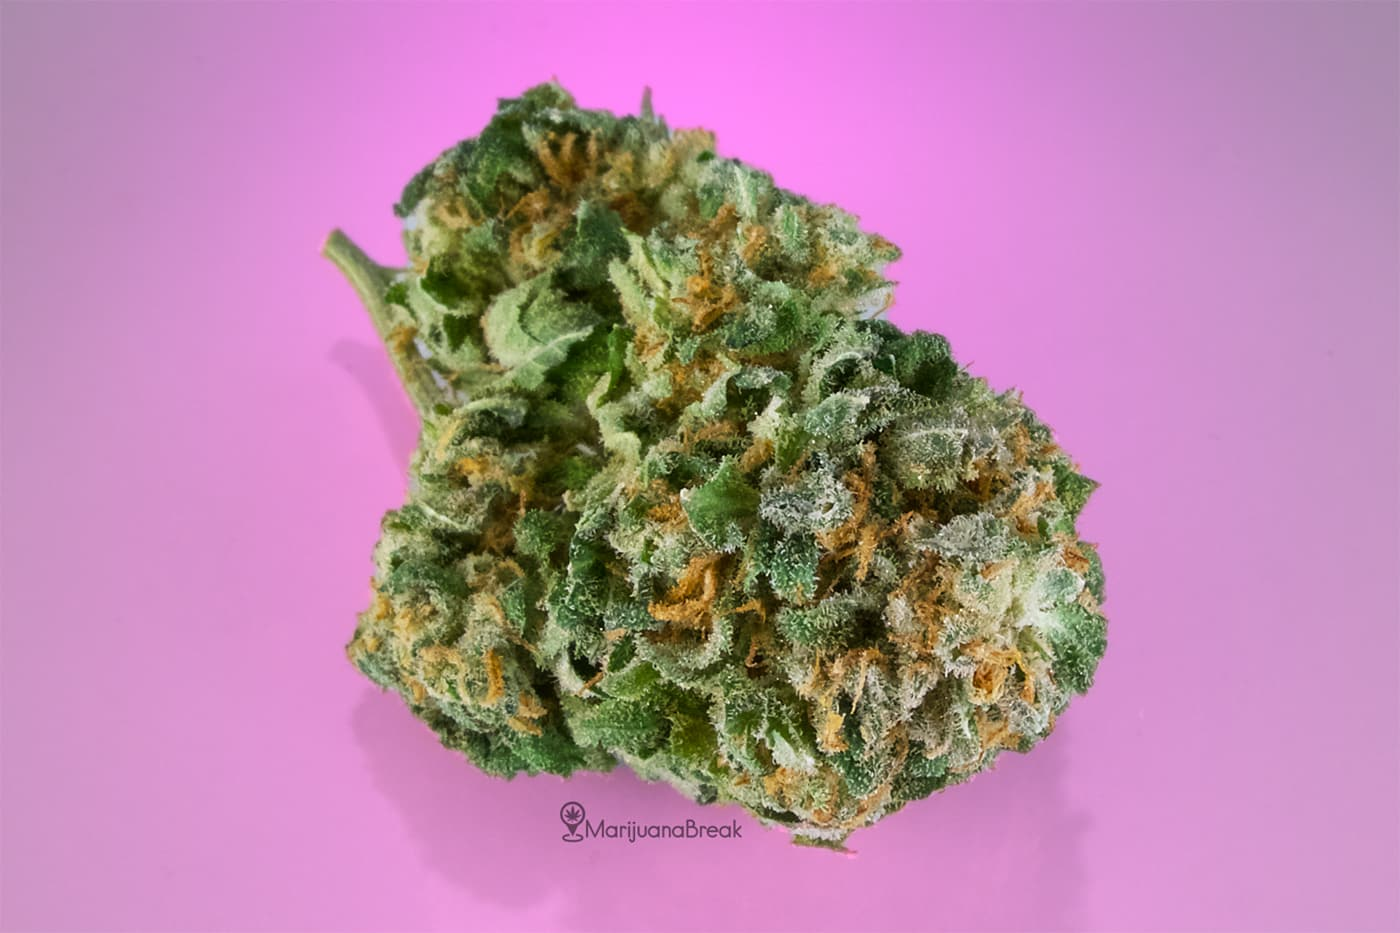 medical benefits of the bubblegum strain